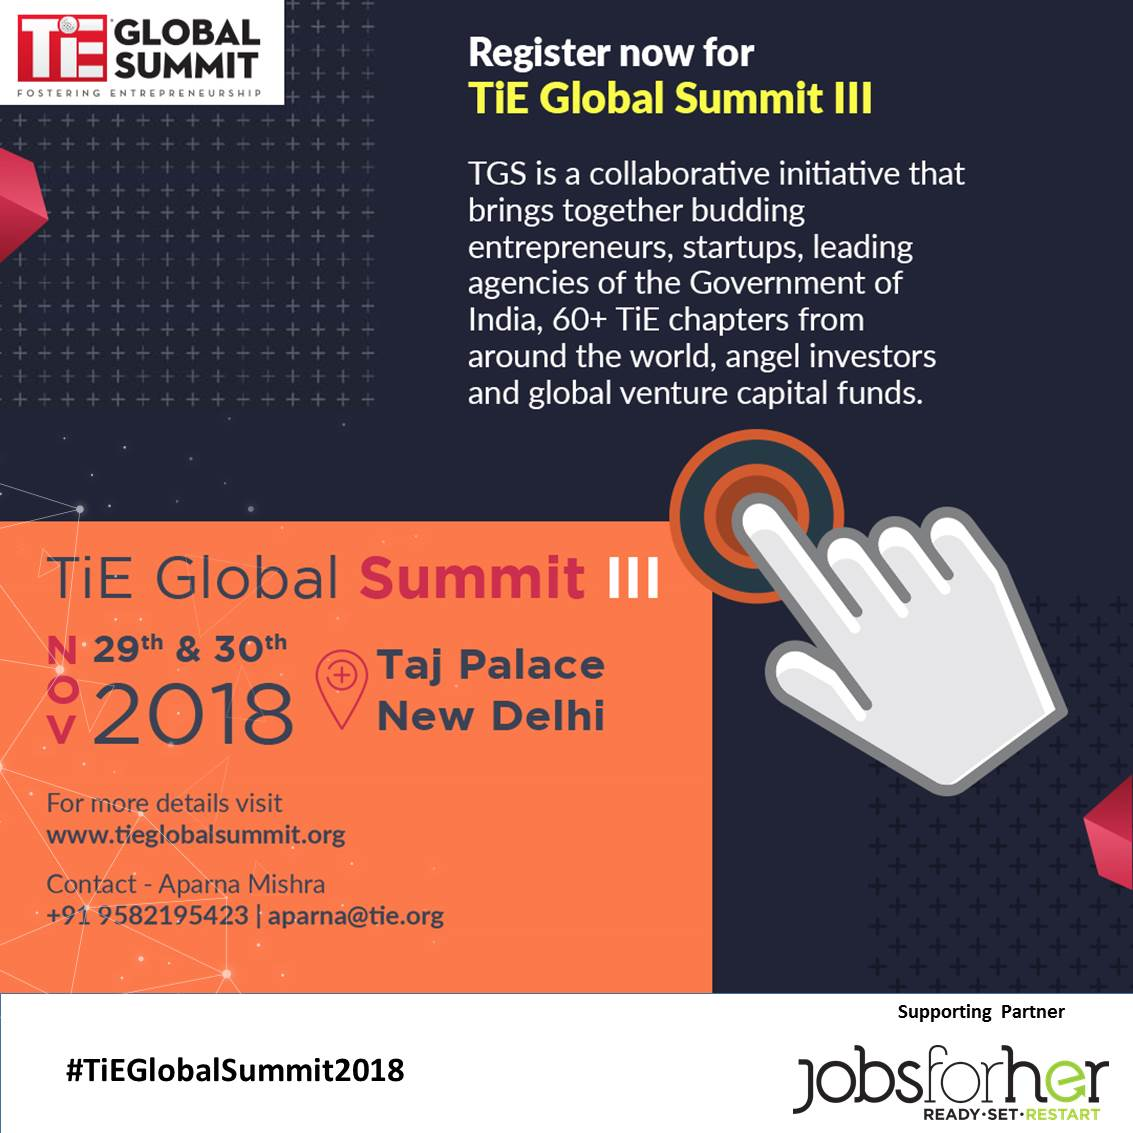 tie-global-summit-iii